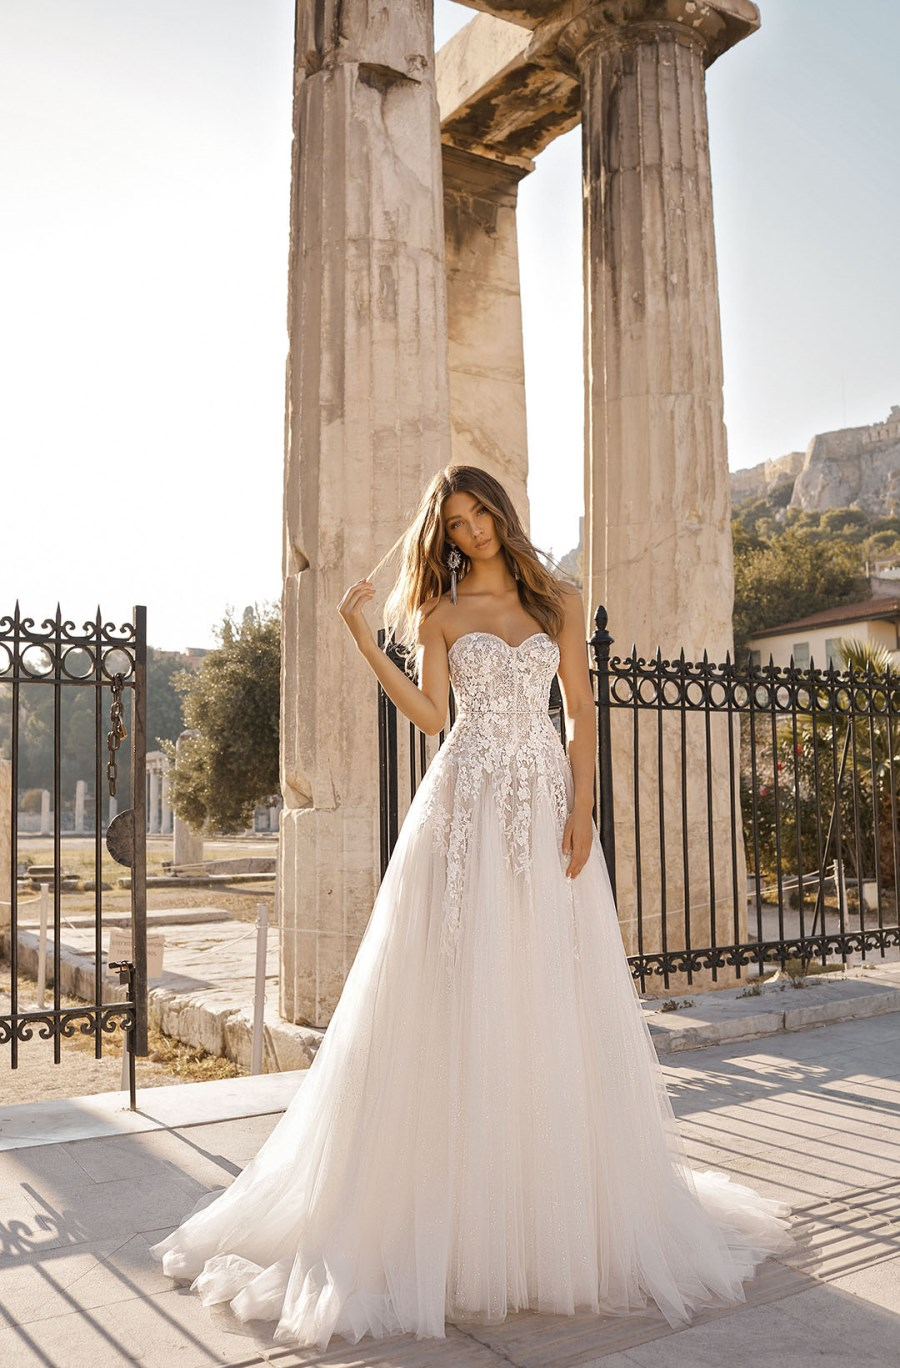 berta-wedding-dress-2019-1 (5)_2